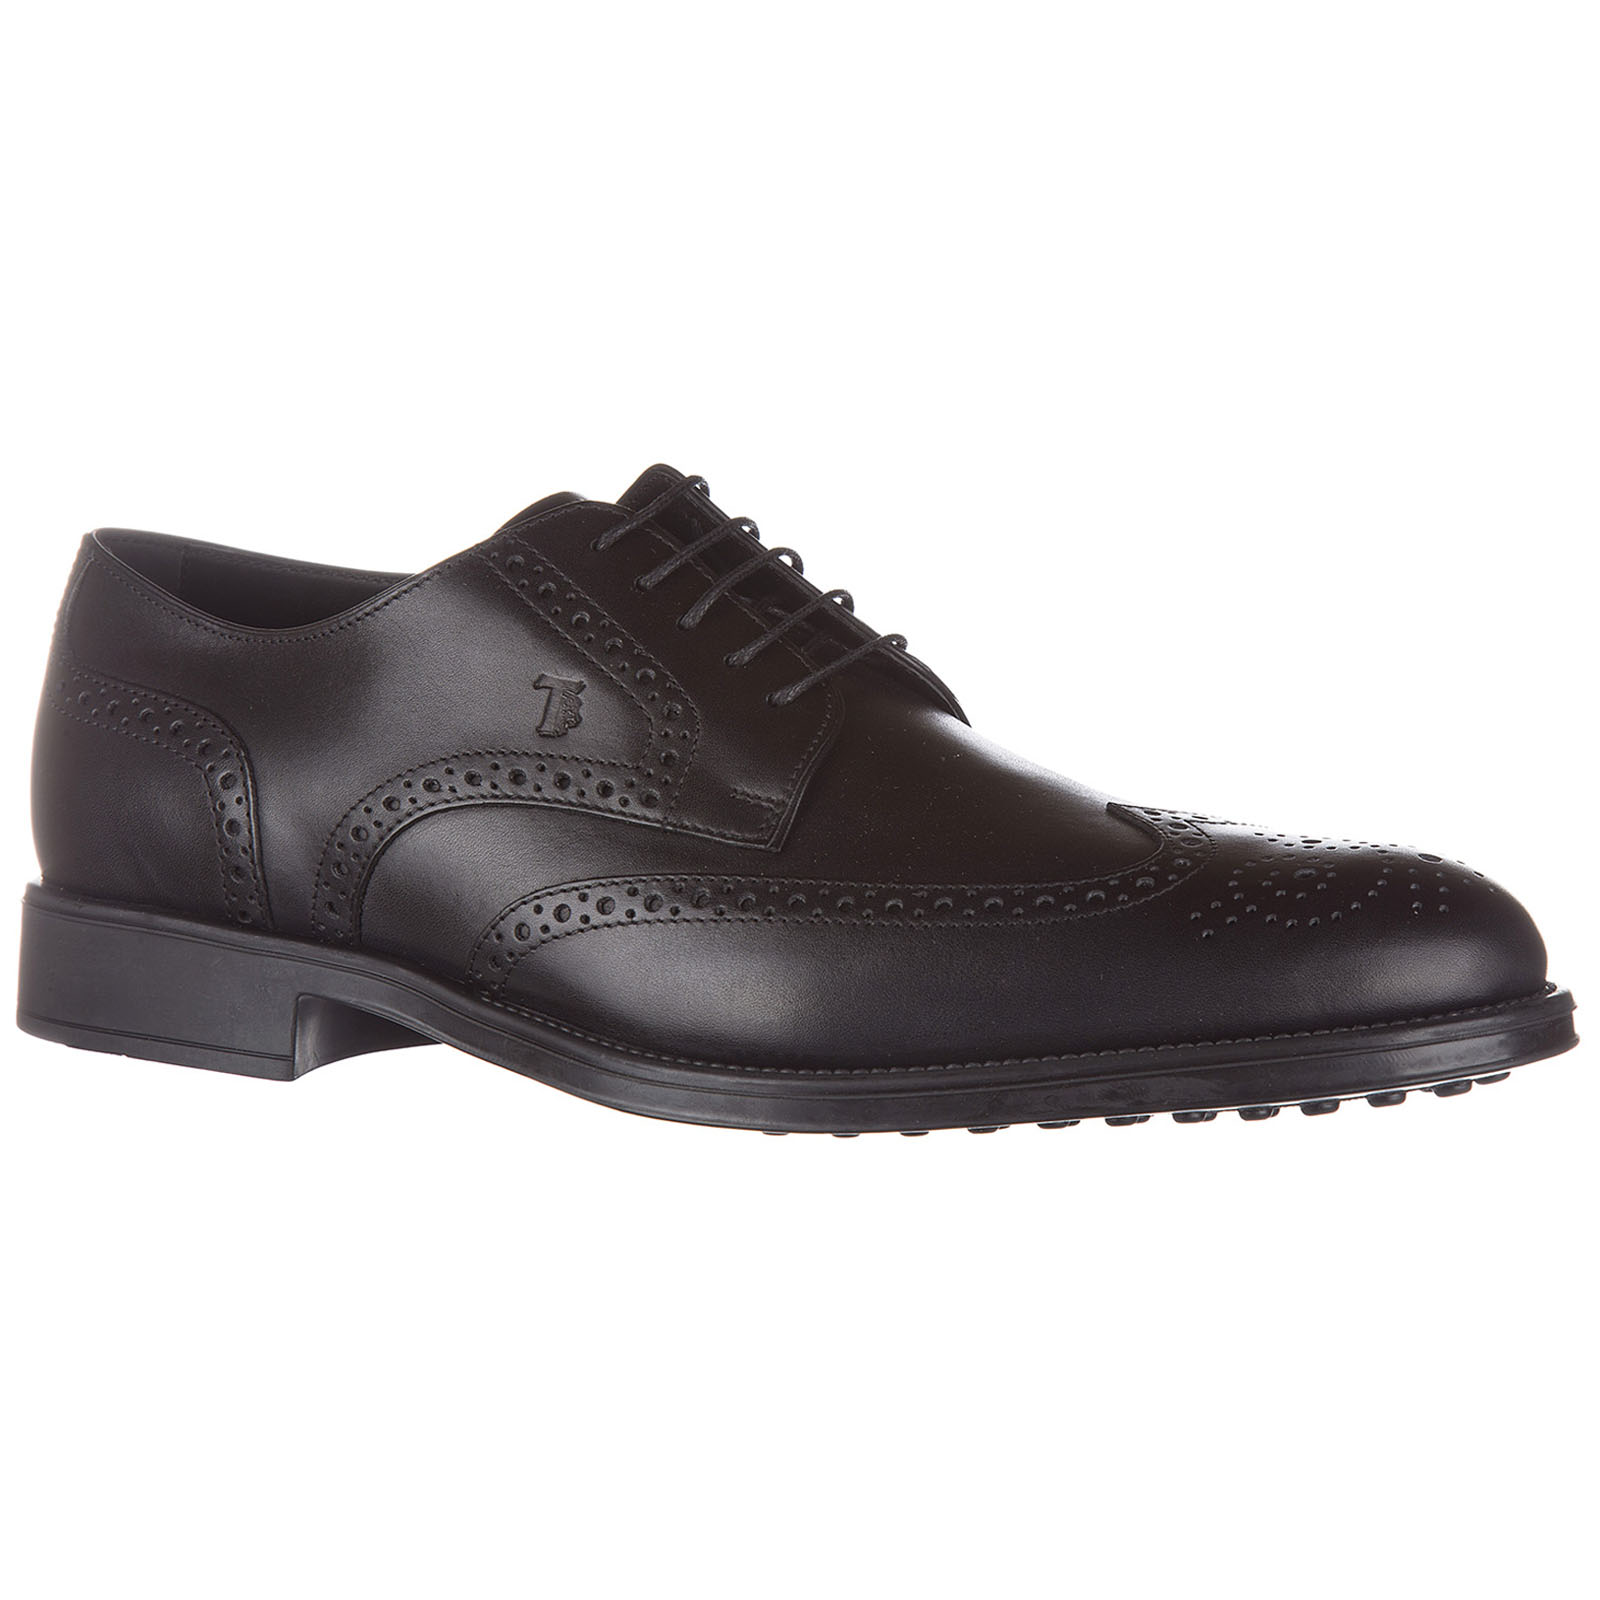 Men's classic leather lace up laced formal shoes derby bucature